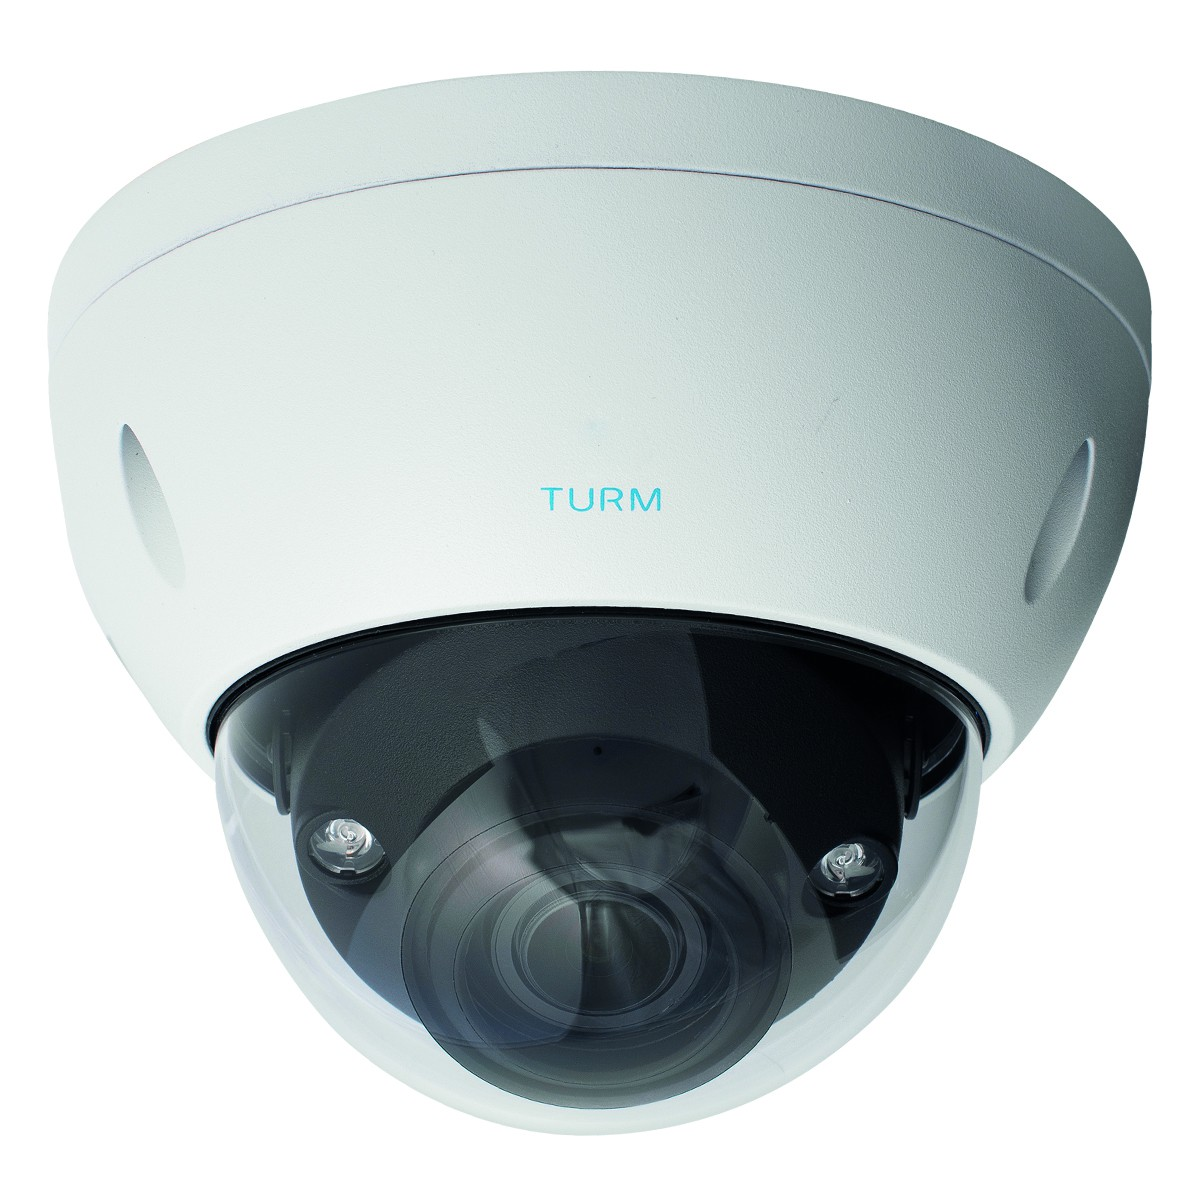 TURM IP Ultra 4 MP Dome Kamera mit intelligenter Videoanalyse und Motorzoom